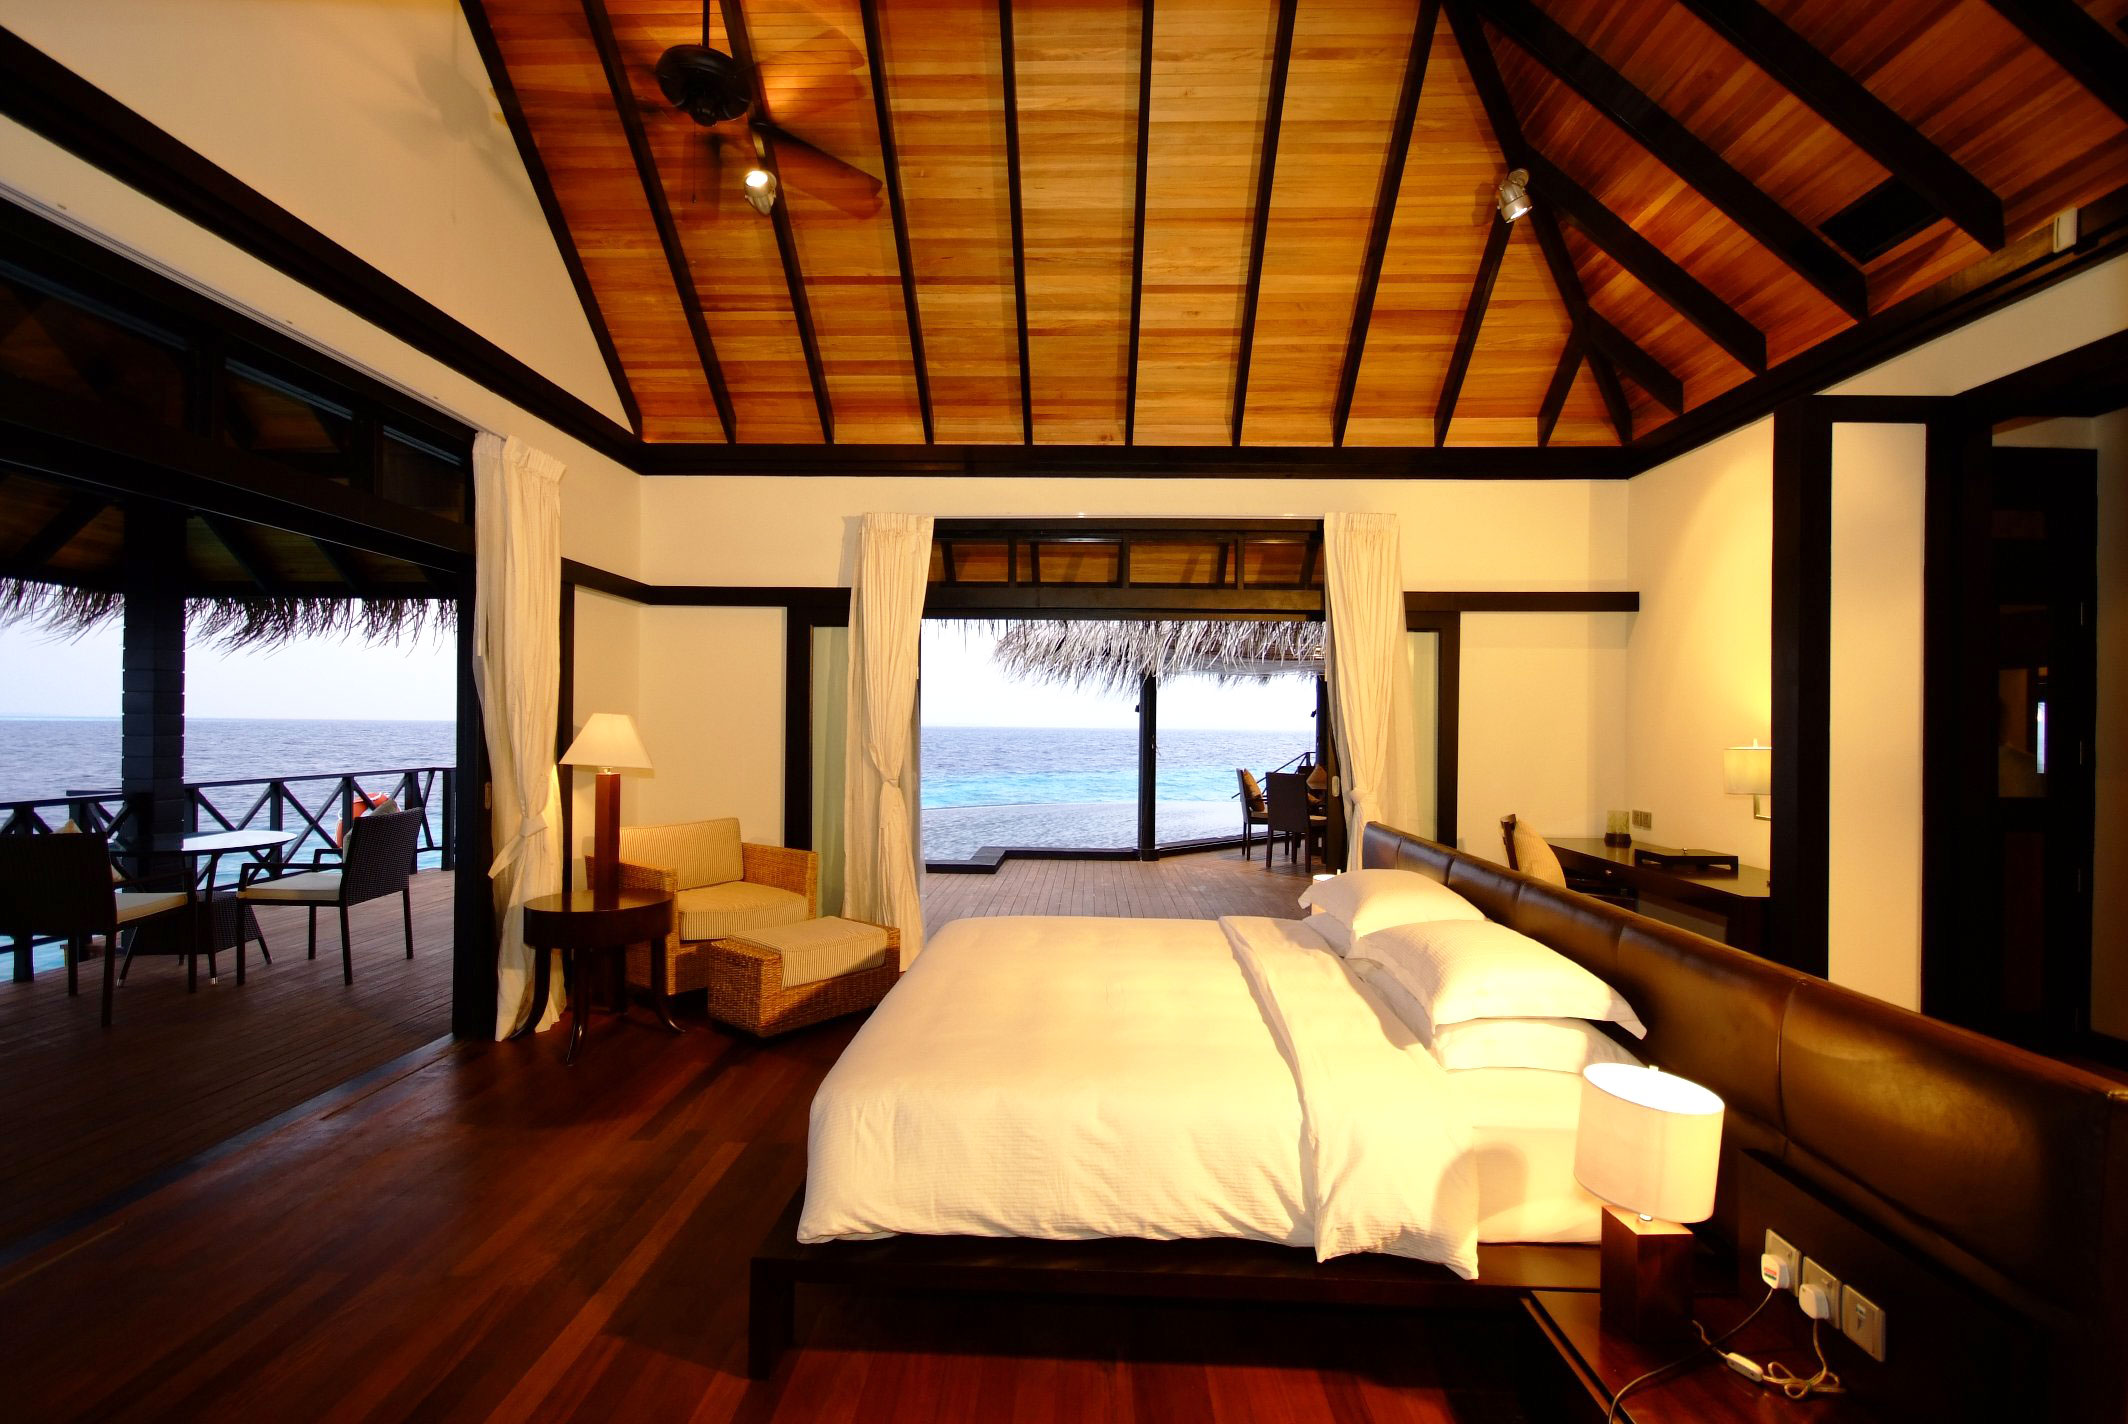 Iruveli a serene beach house in maldives architecture for Wooden hotel design